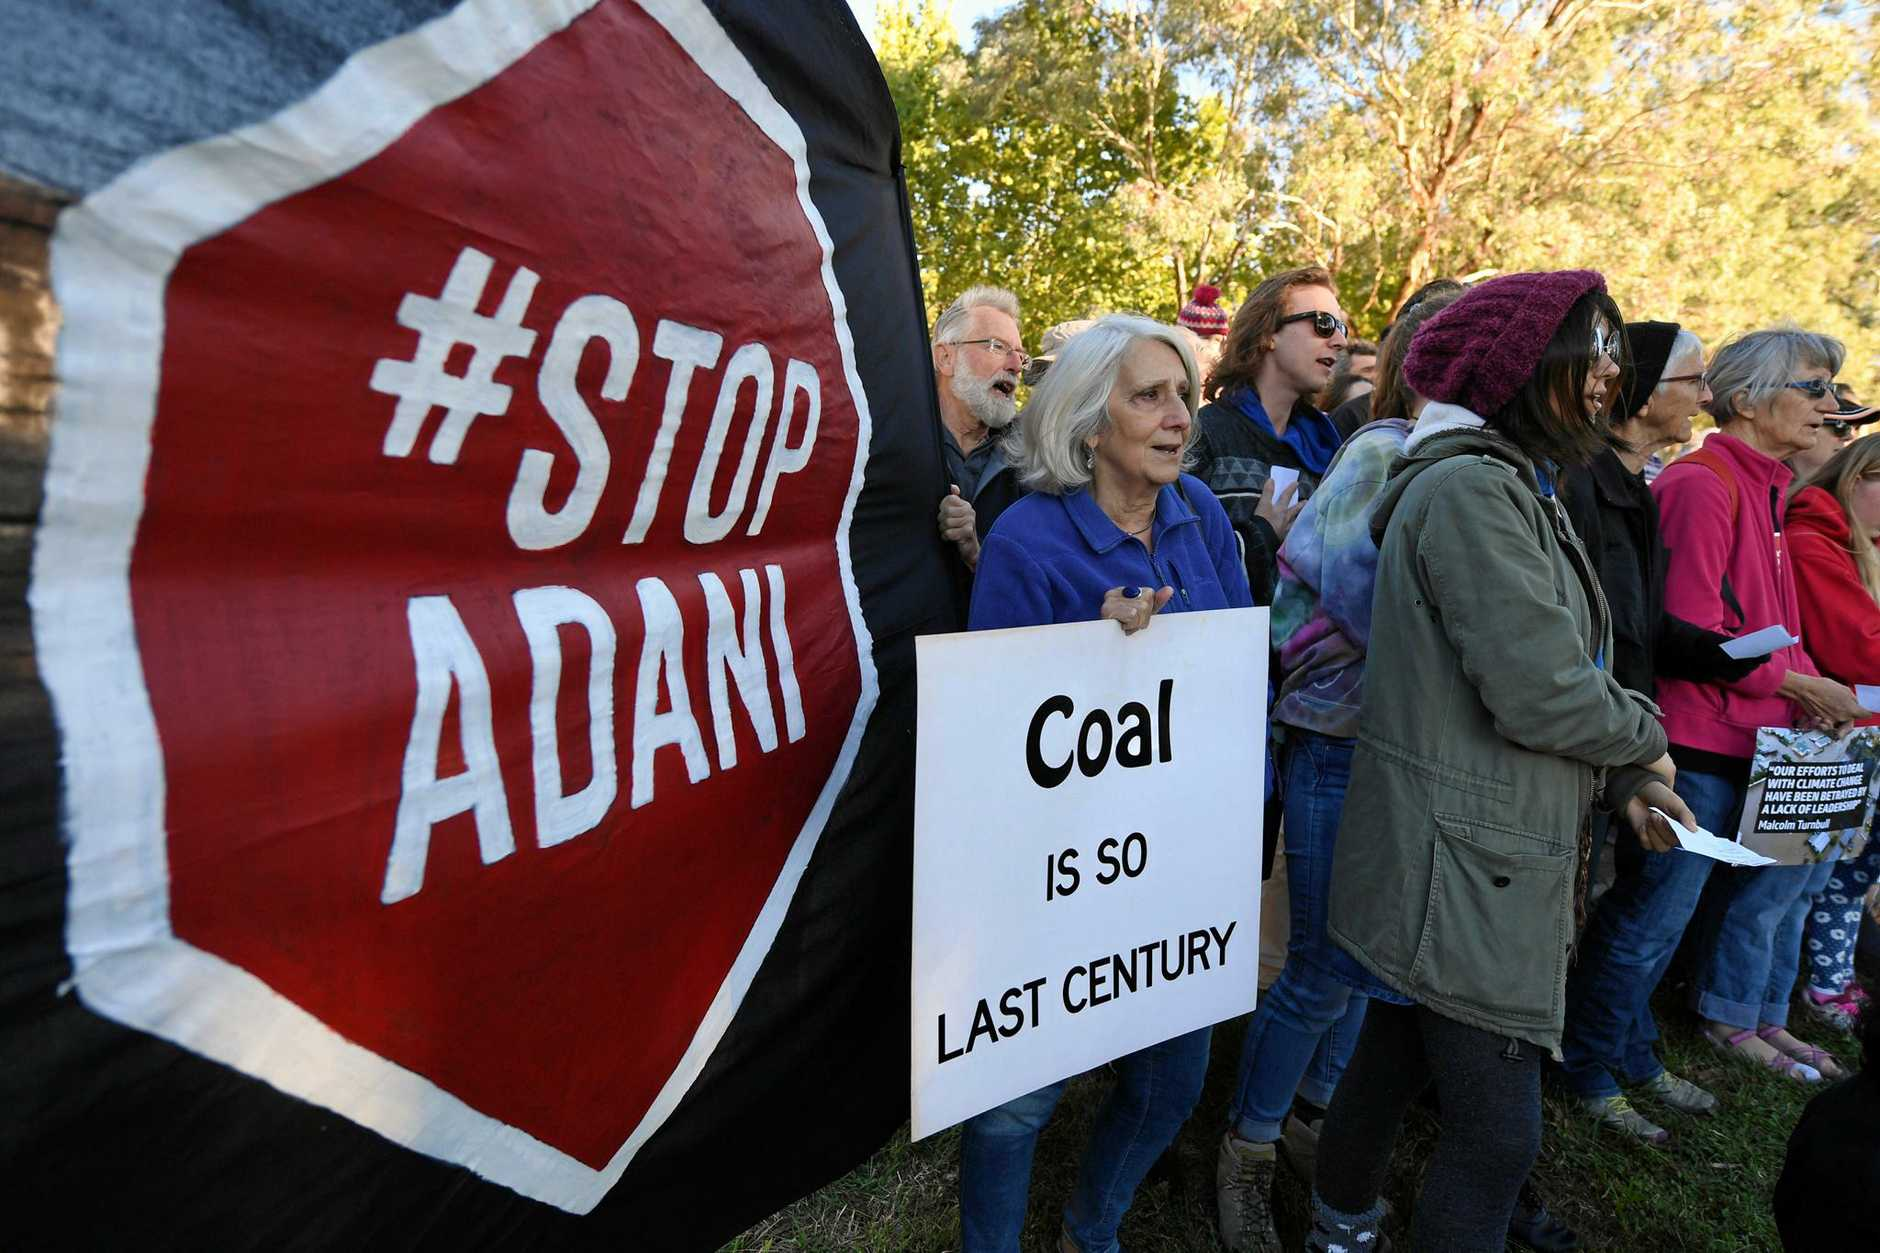 NOT DIGGING IT: Opponents of the proposed Adani coal mine in Queensland protest yesterday outside the Indian High Commission in Canberra.